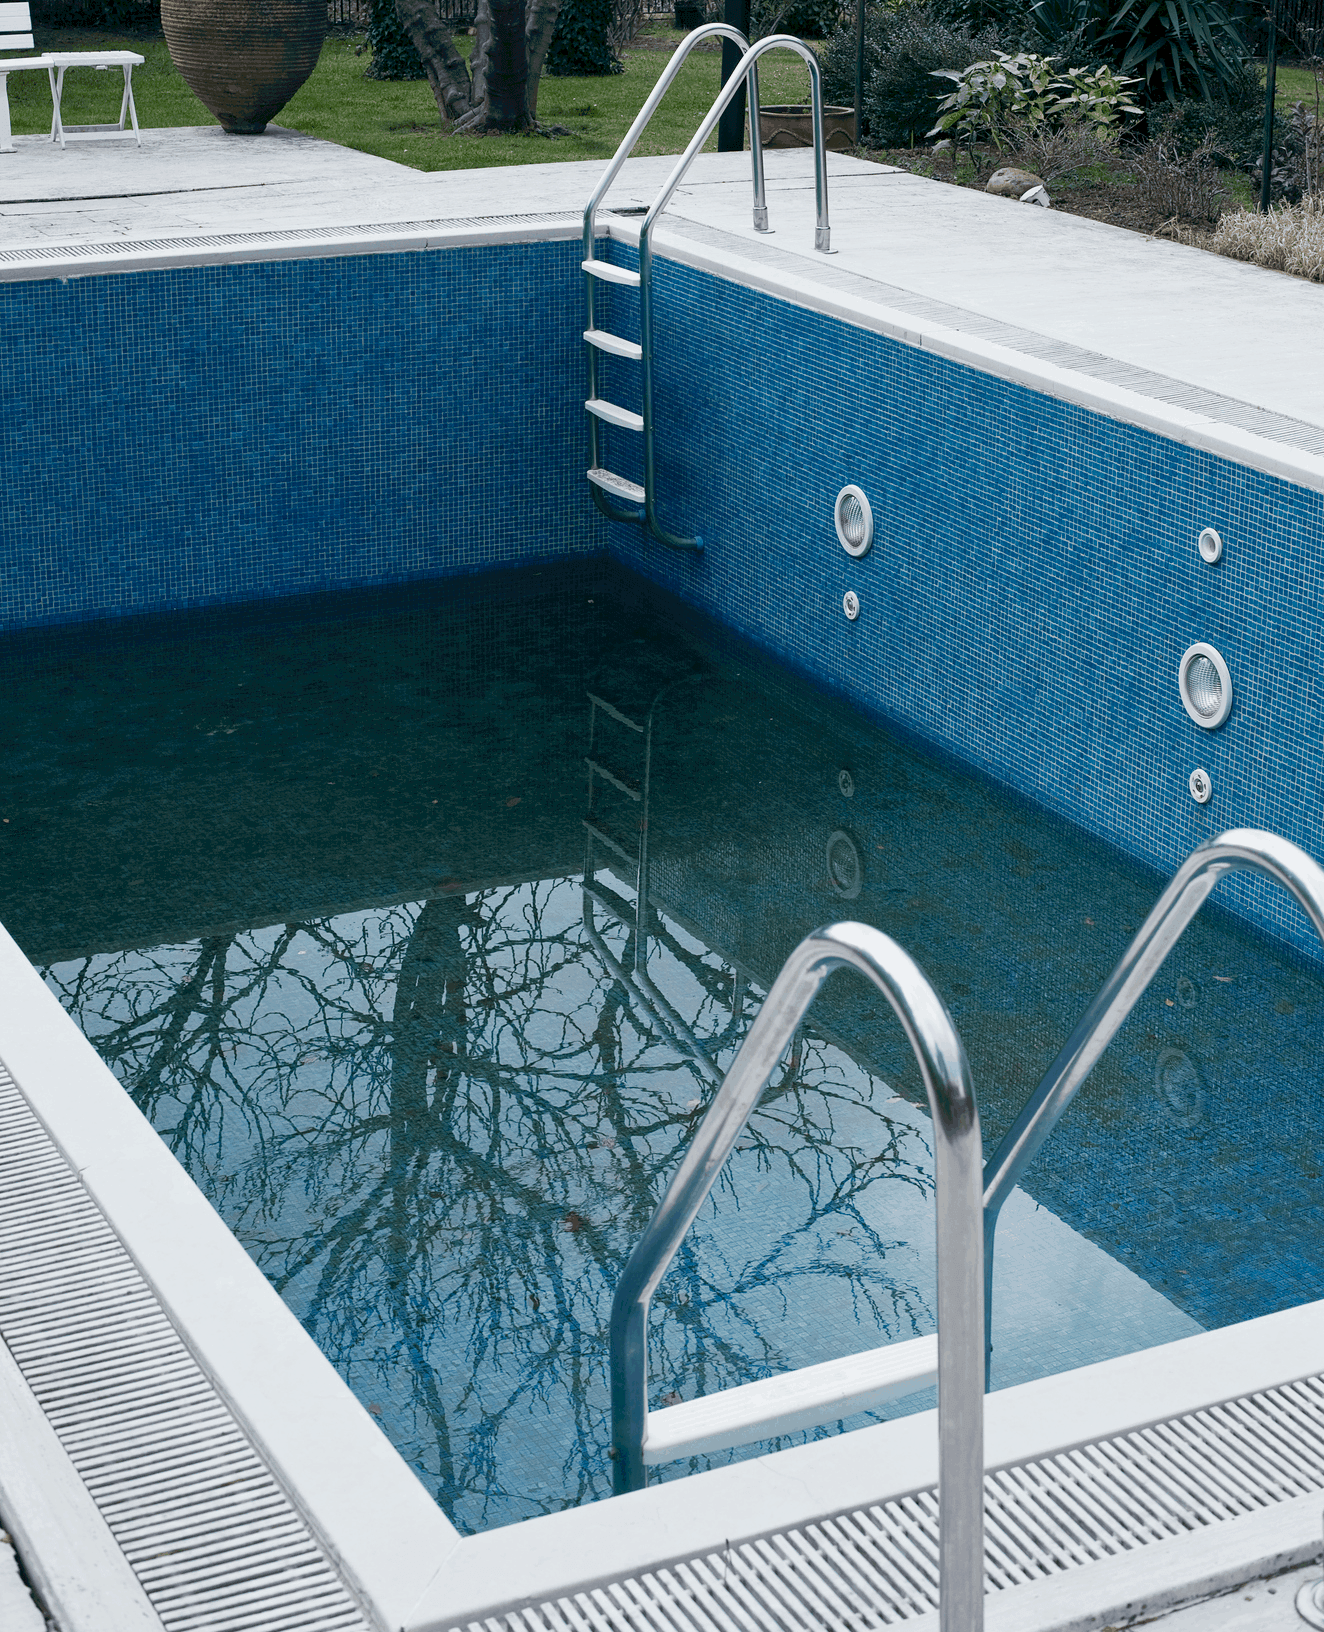 Pool leak detection Maribyrnong